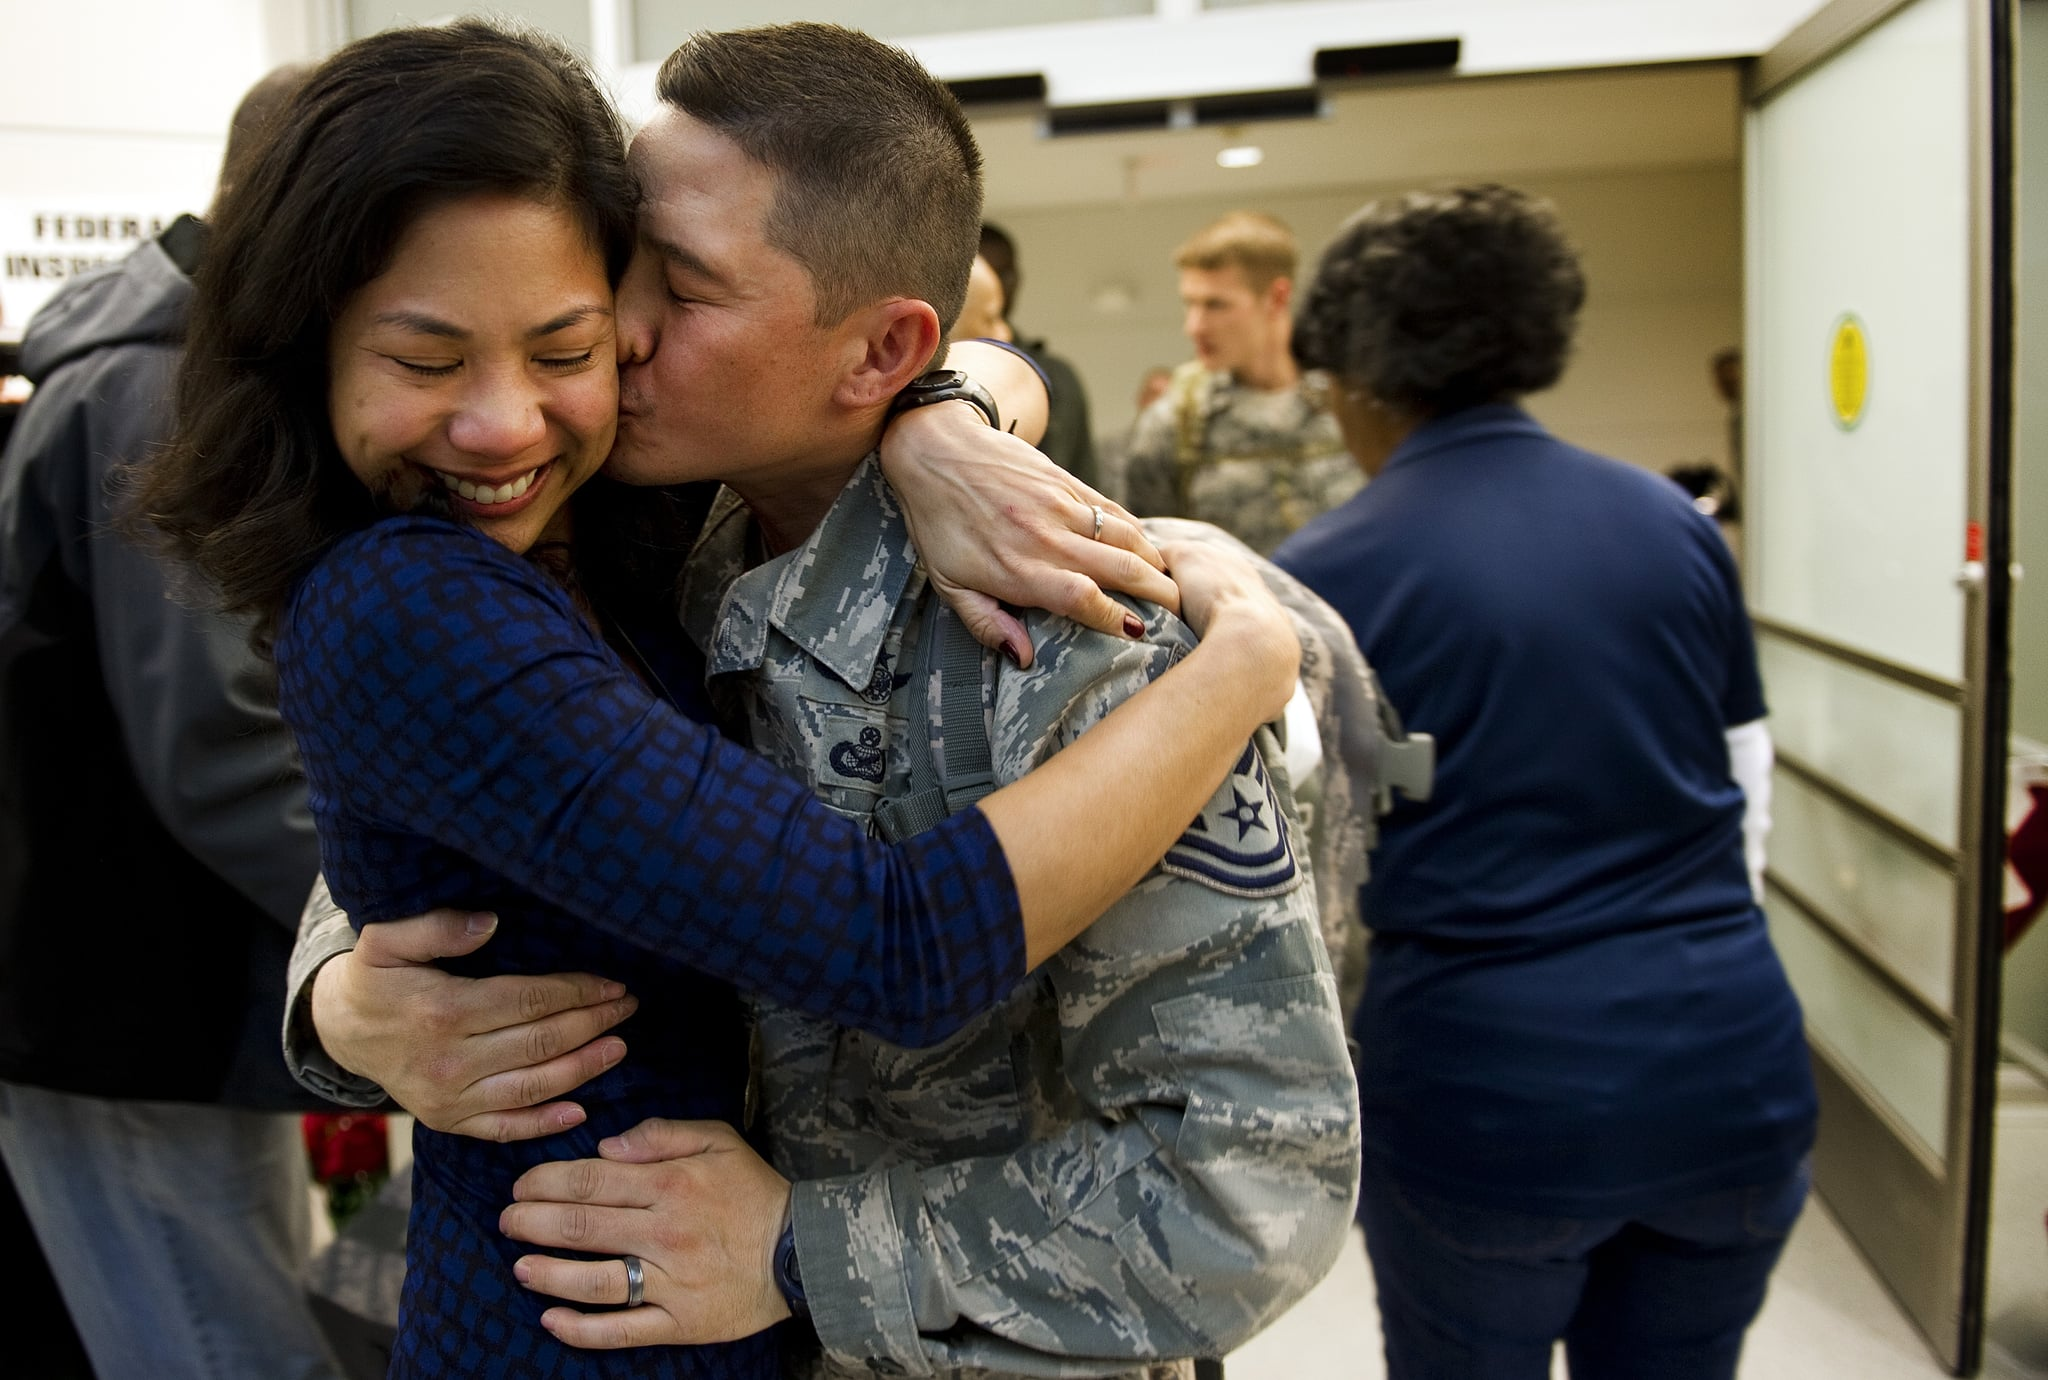 Tech Sgt. Cecilio Ricardo kissed his wife, Lalaine, when he arrived at Baltimore Washington International Airport in Baltimore on Dec. 20, 2011. He was a part of the last Air Force personnel group to return home from Iraq.